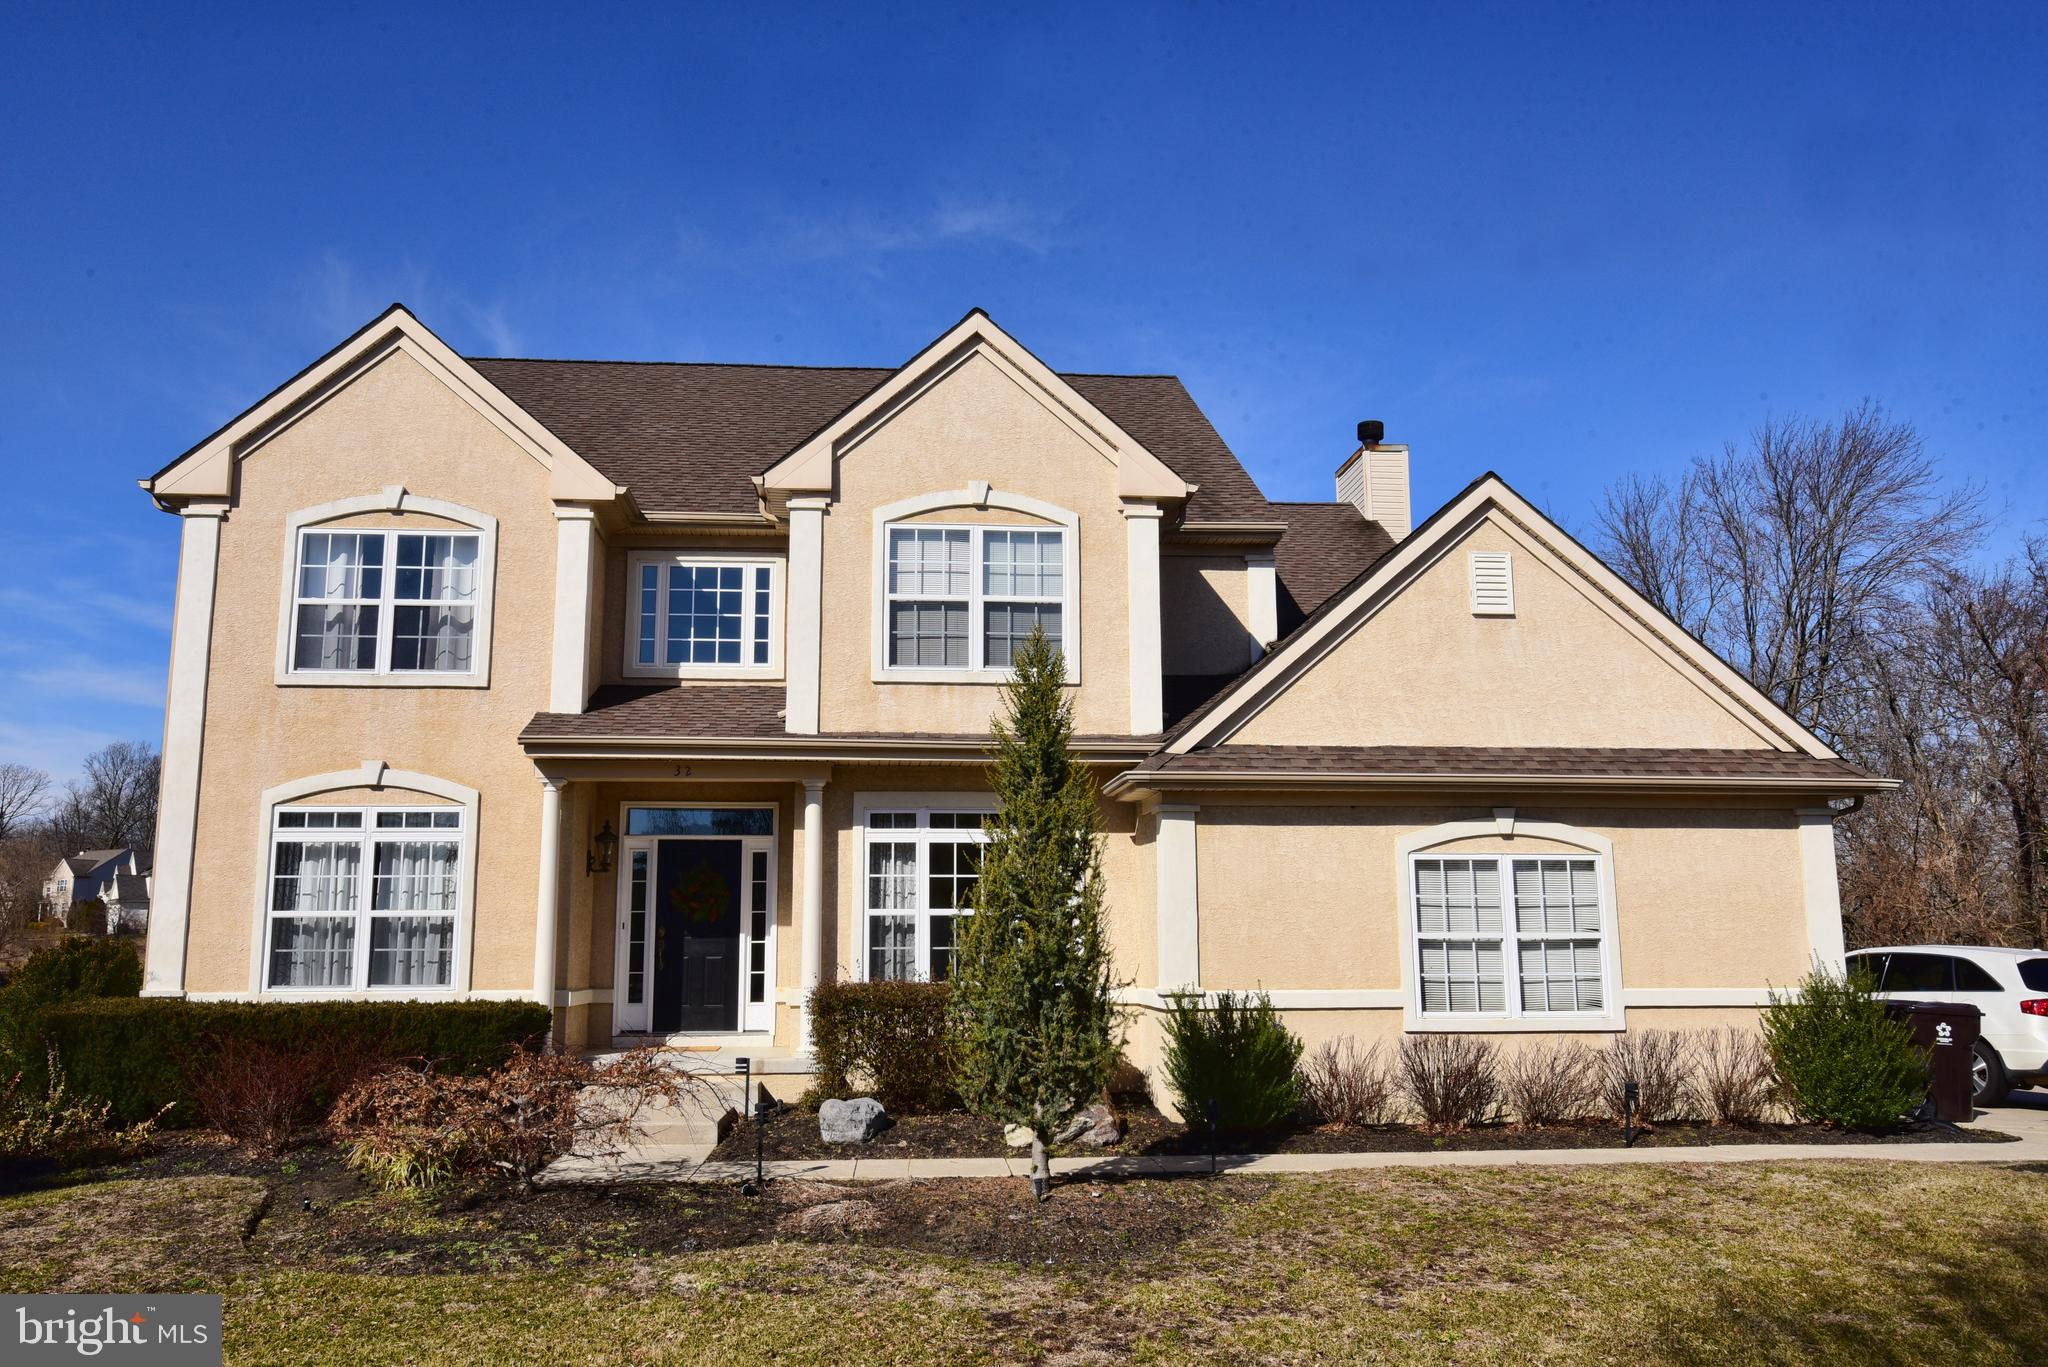 32 WATERS EDGE DRIVE, DELRAN, NJ 08075